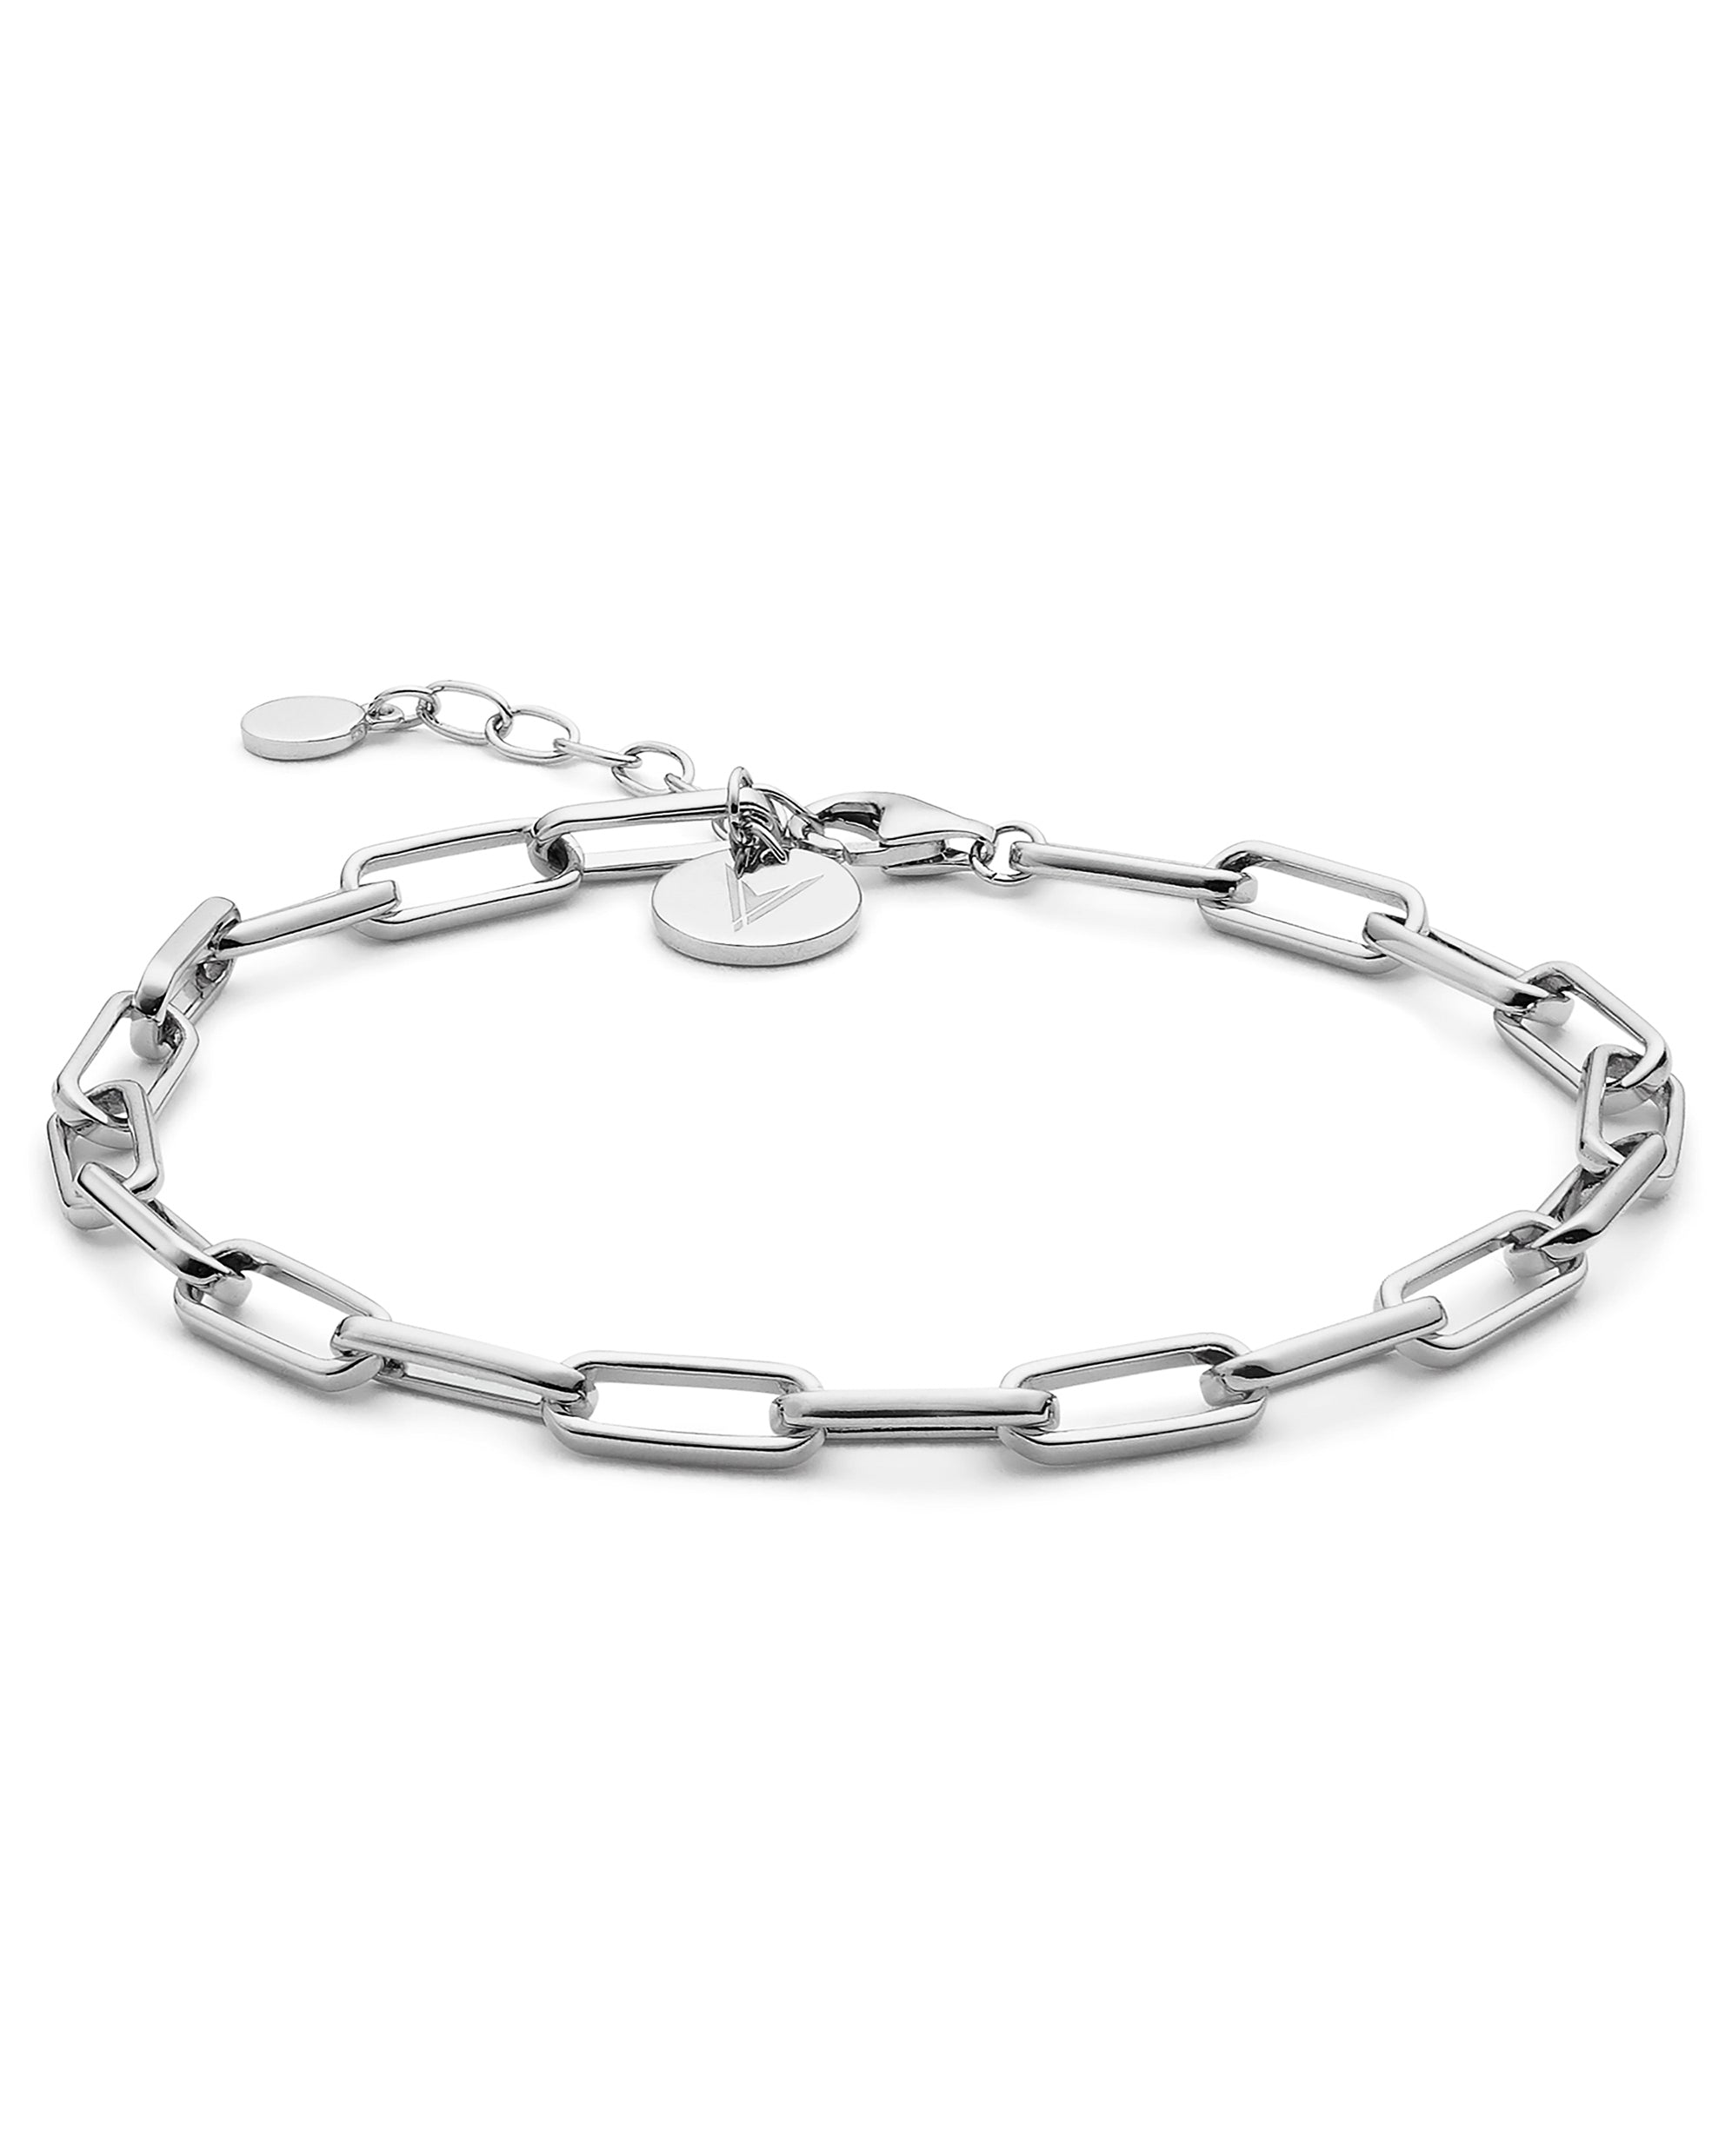 The Chain Link Bracelet - Silver